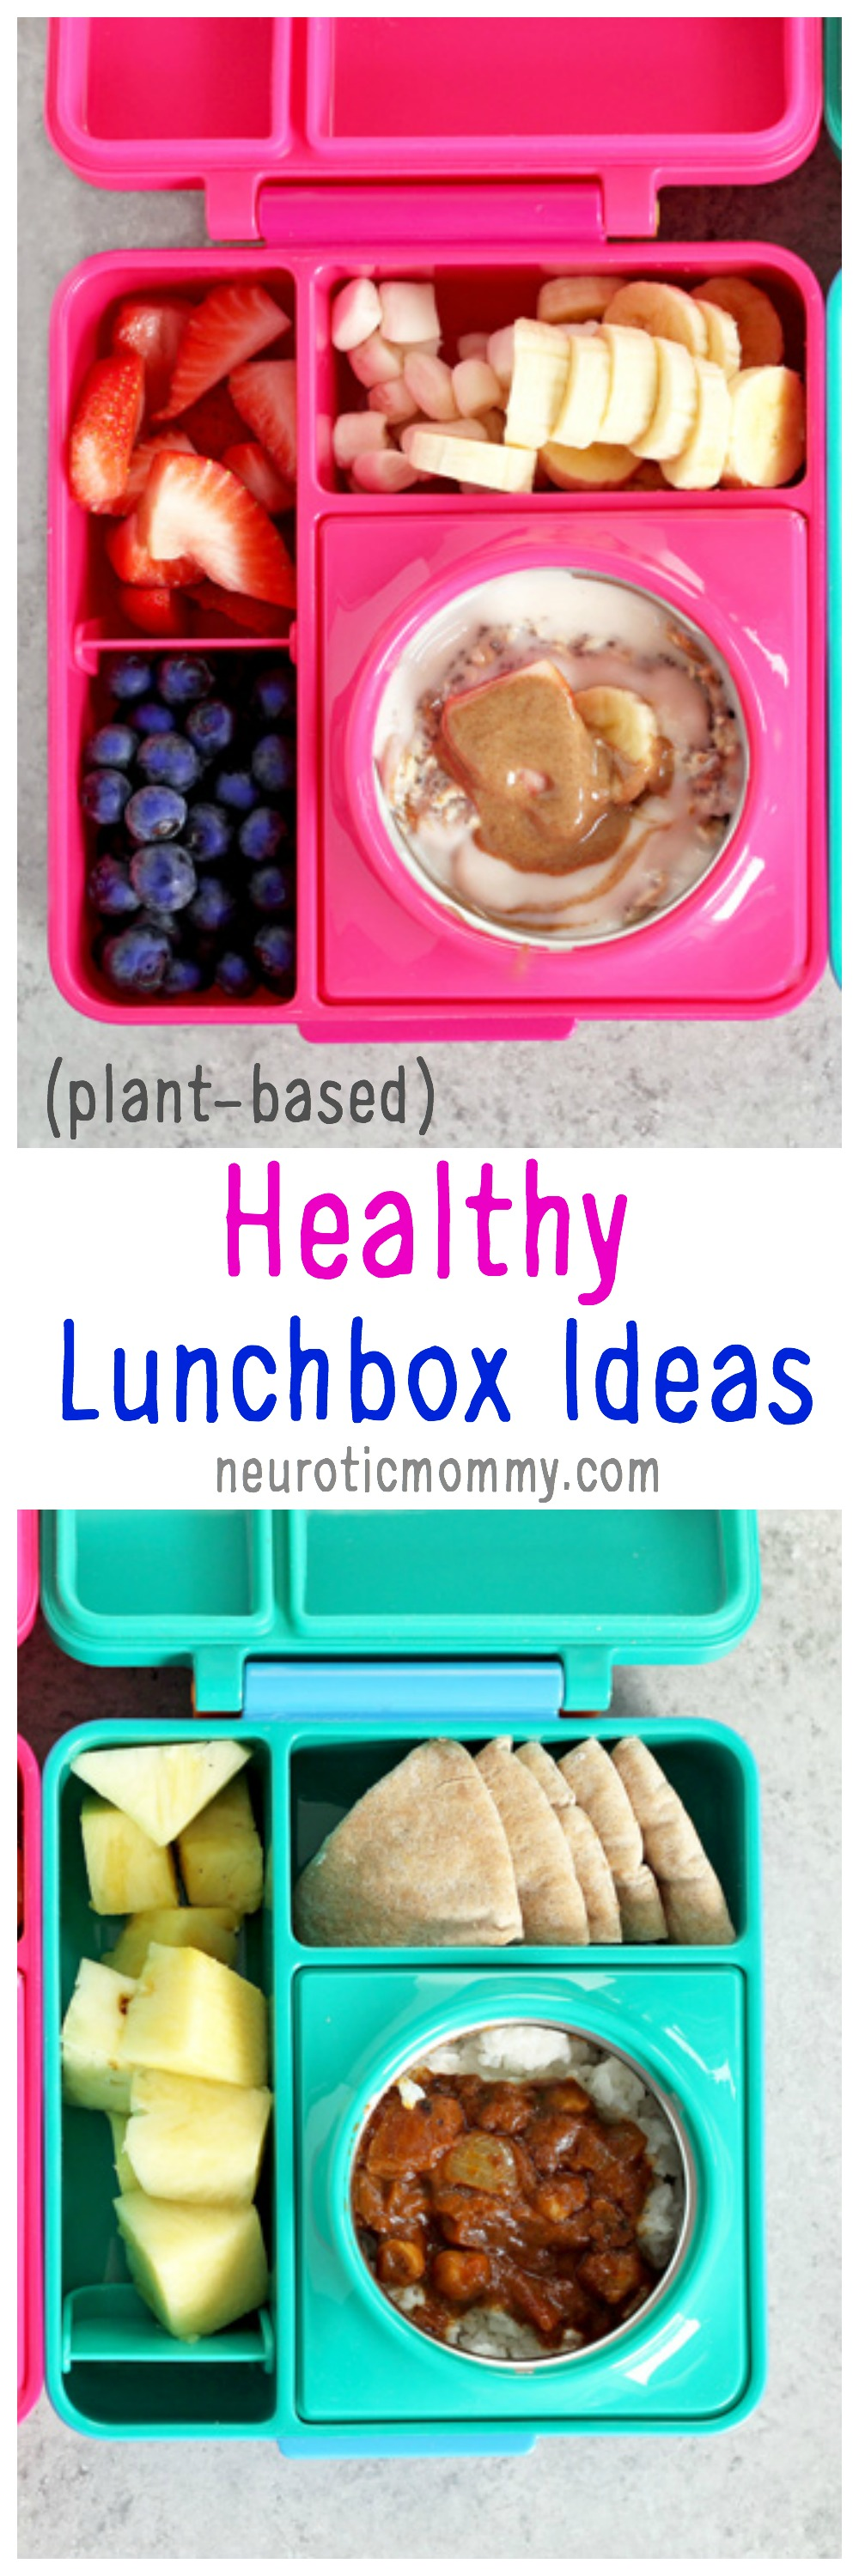 Healthy Lunchbox Ideas With Omiebox - Hot and cold bento box to make kids lunch irresistible! There's nothing better than sending your kid off to school with a healthy and nutritious meal that will stay fresh. NeuroticMommy.com #health #lunchbox #recipes #plantbased